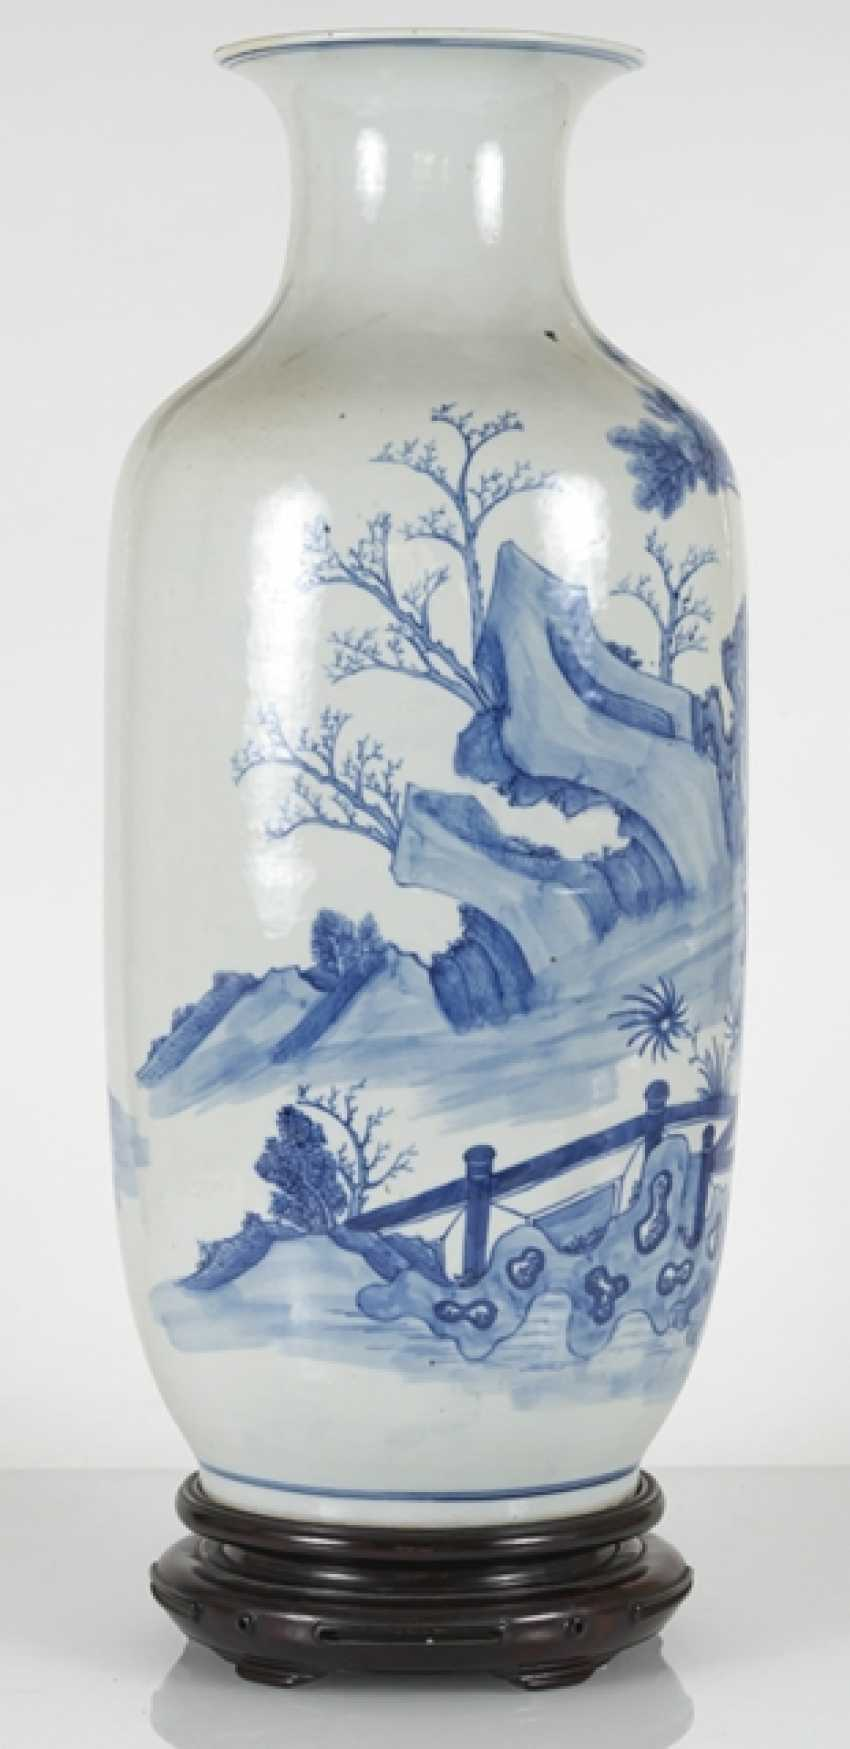 Under glaze blue decorated floor vase made of porcelain with a depiction of Su Shi and Qin Guan - photo 5